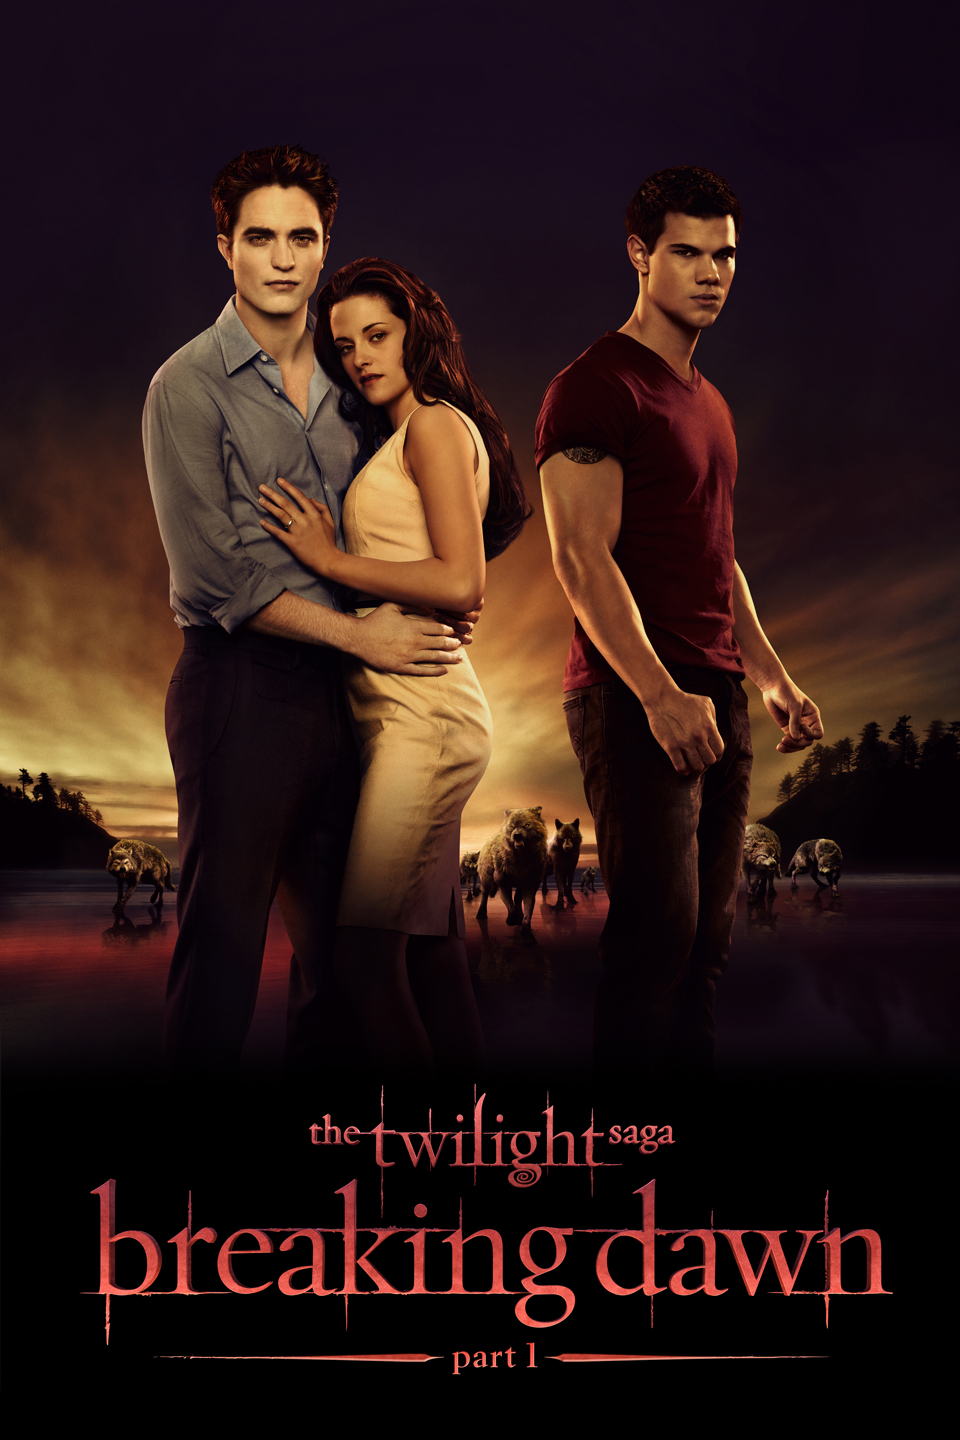 The Twilight Saga: Breaking Dawn Pt. 1